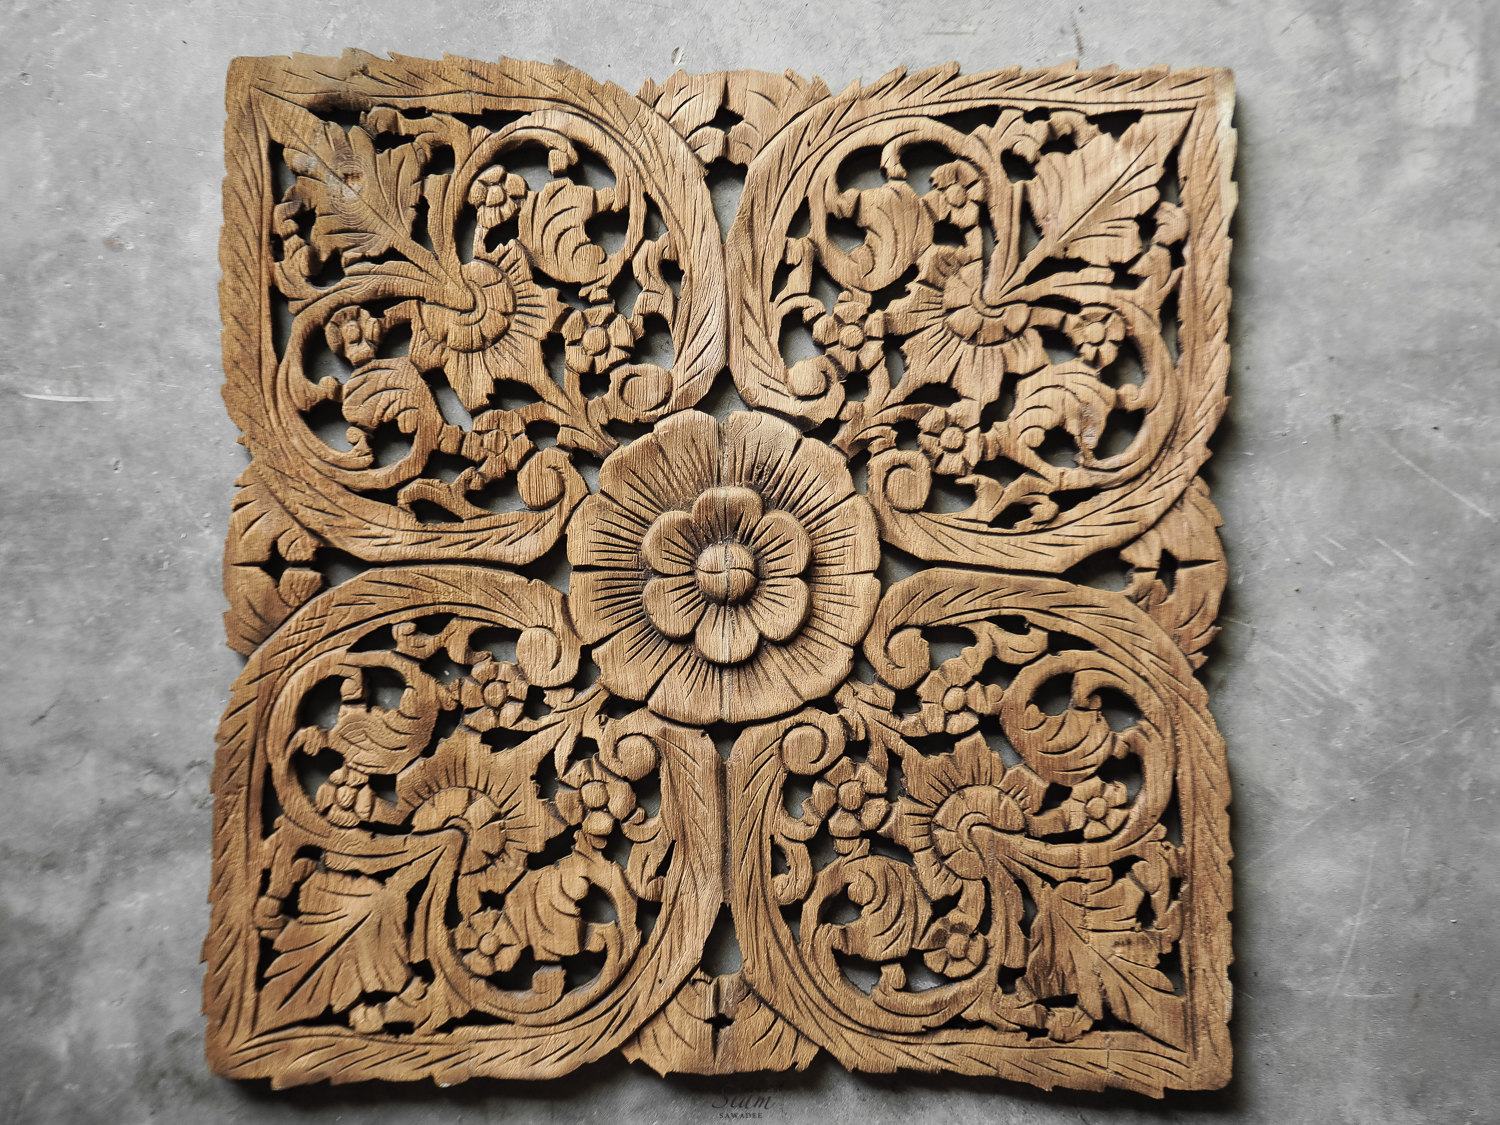 Carved Wood Wall Hanging Buy Thai Oriental Lotus Carved Wood Wall Art Decor Online